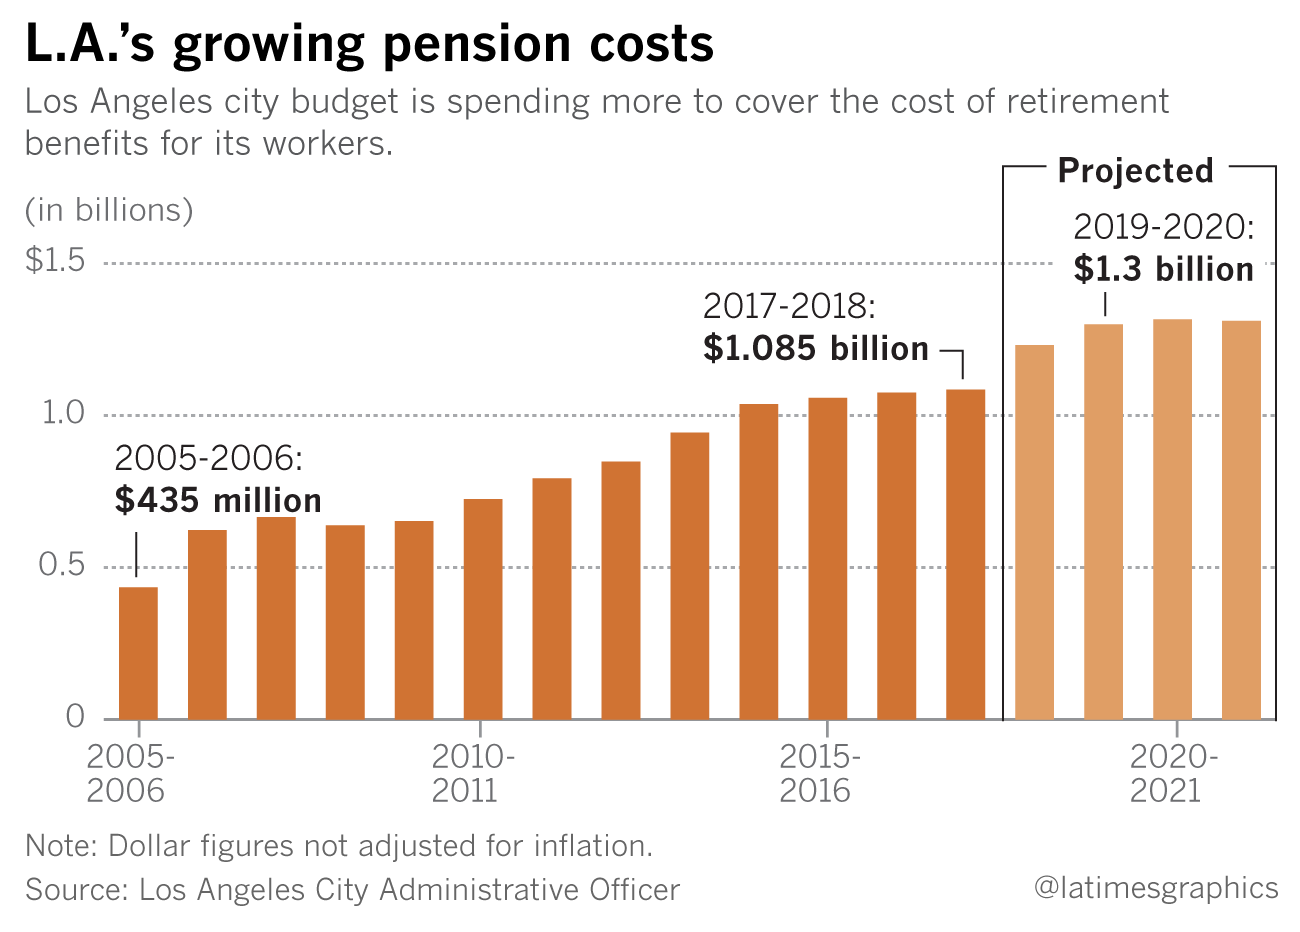 A report issued in April projected a $215 million increase in retirement costs over two years, if two pension boards lower their earnings projections. That figure could grow, depending on coming budget decisions.